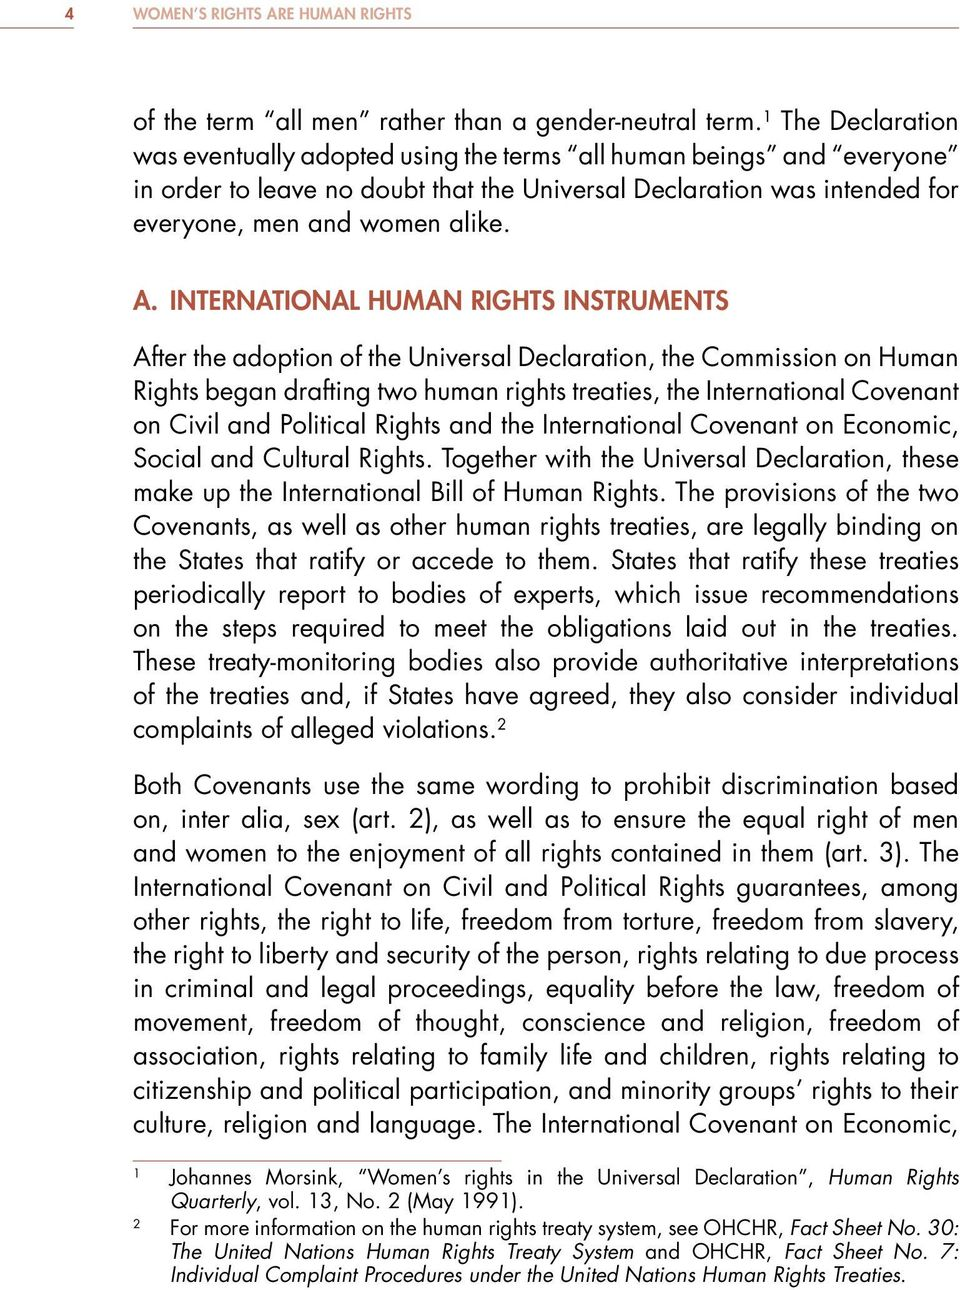 INTERNATIONAL HUMAN RIGHTS INSTRUMENTS After the adoption of the Universal Declaration, the Commission on Human Rights began drafting two human rights treaties, the International Covenant on Civil